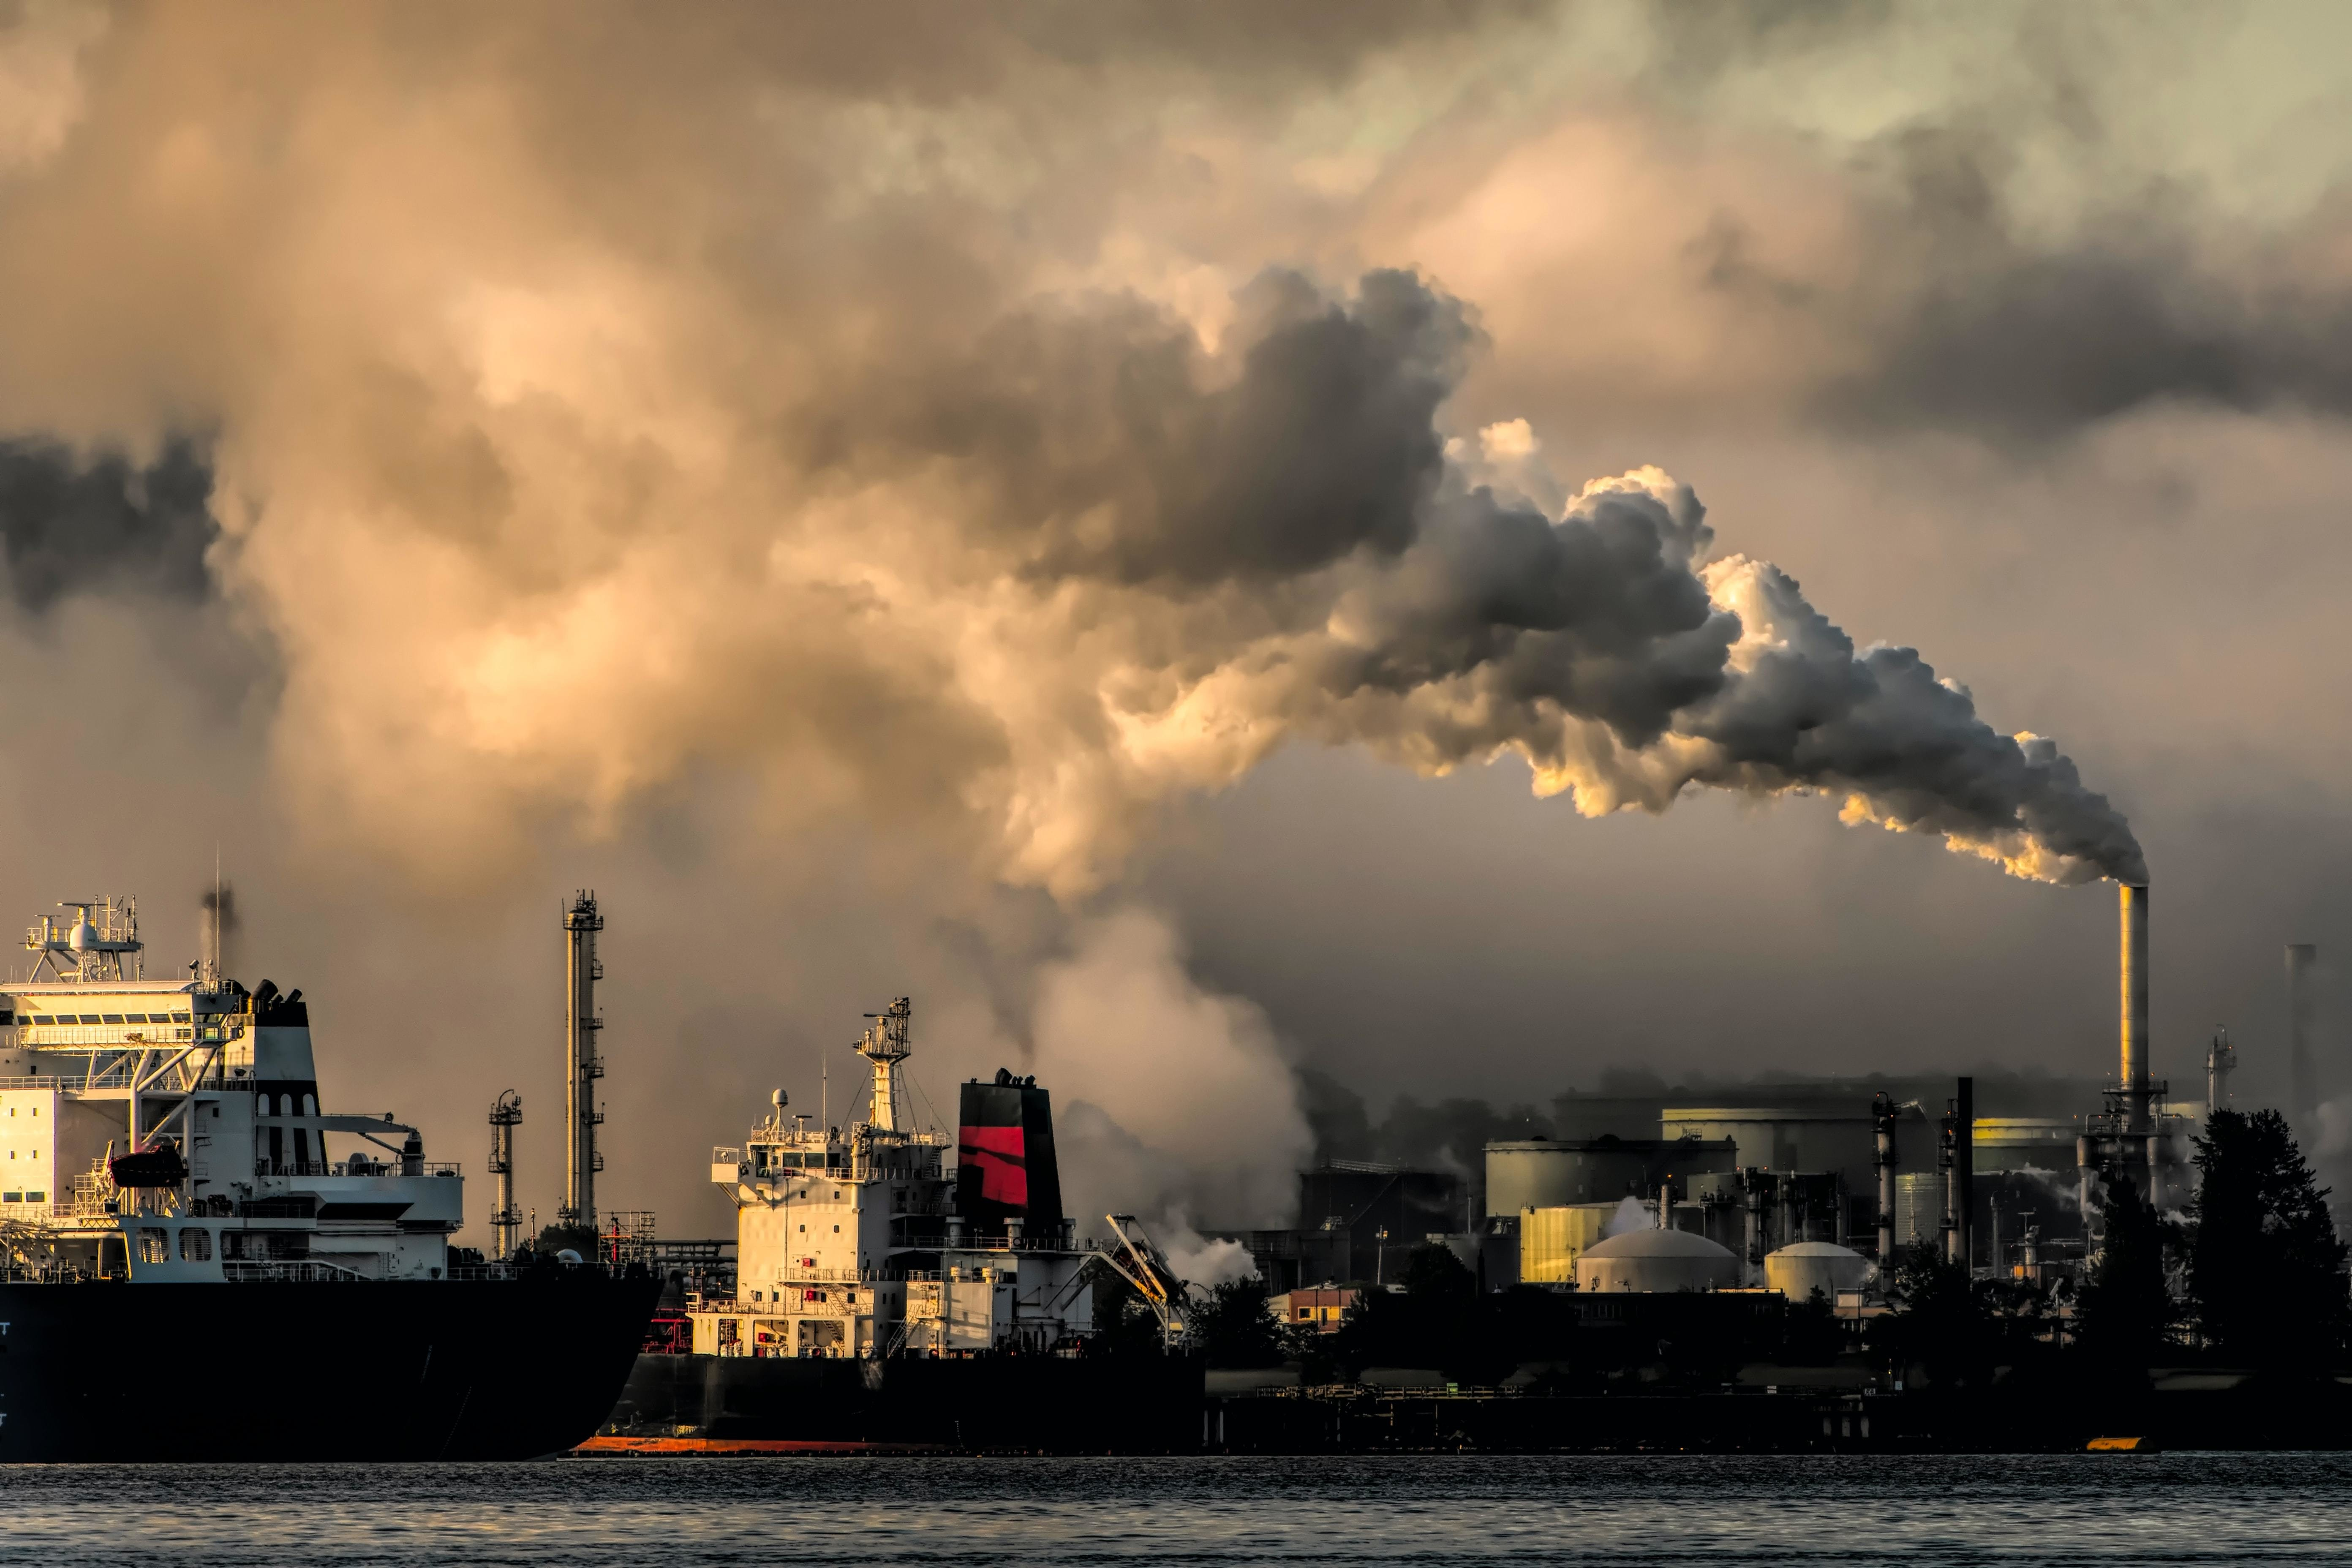 climate-change-solutons-by-way-of-carbon-taxes